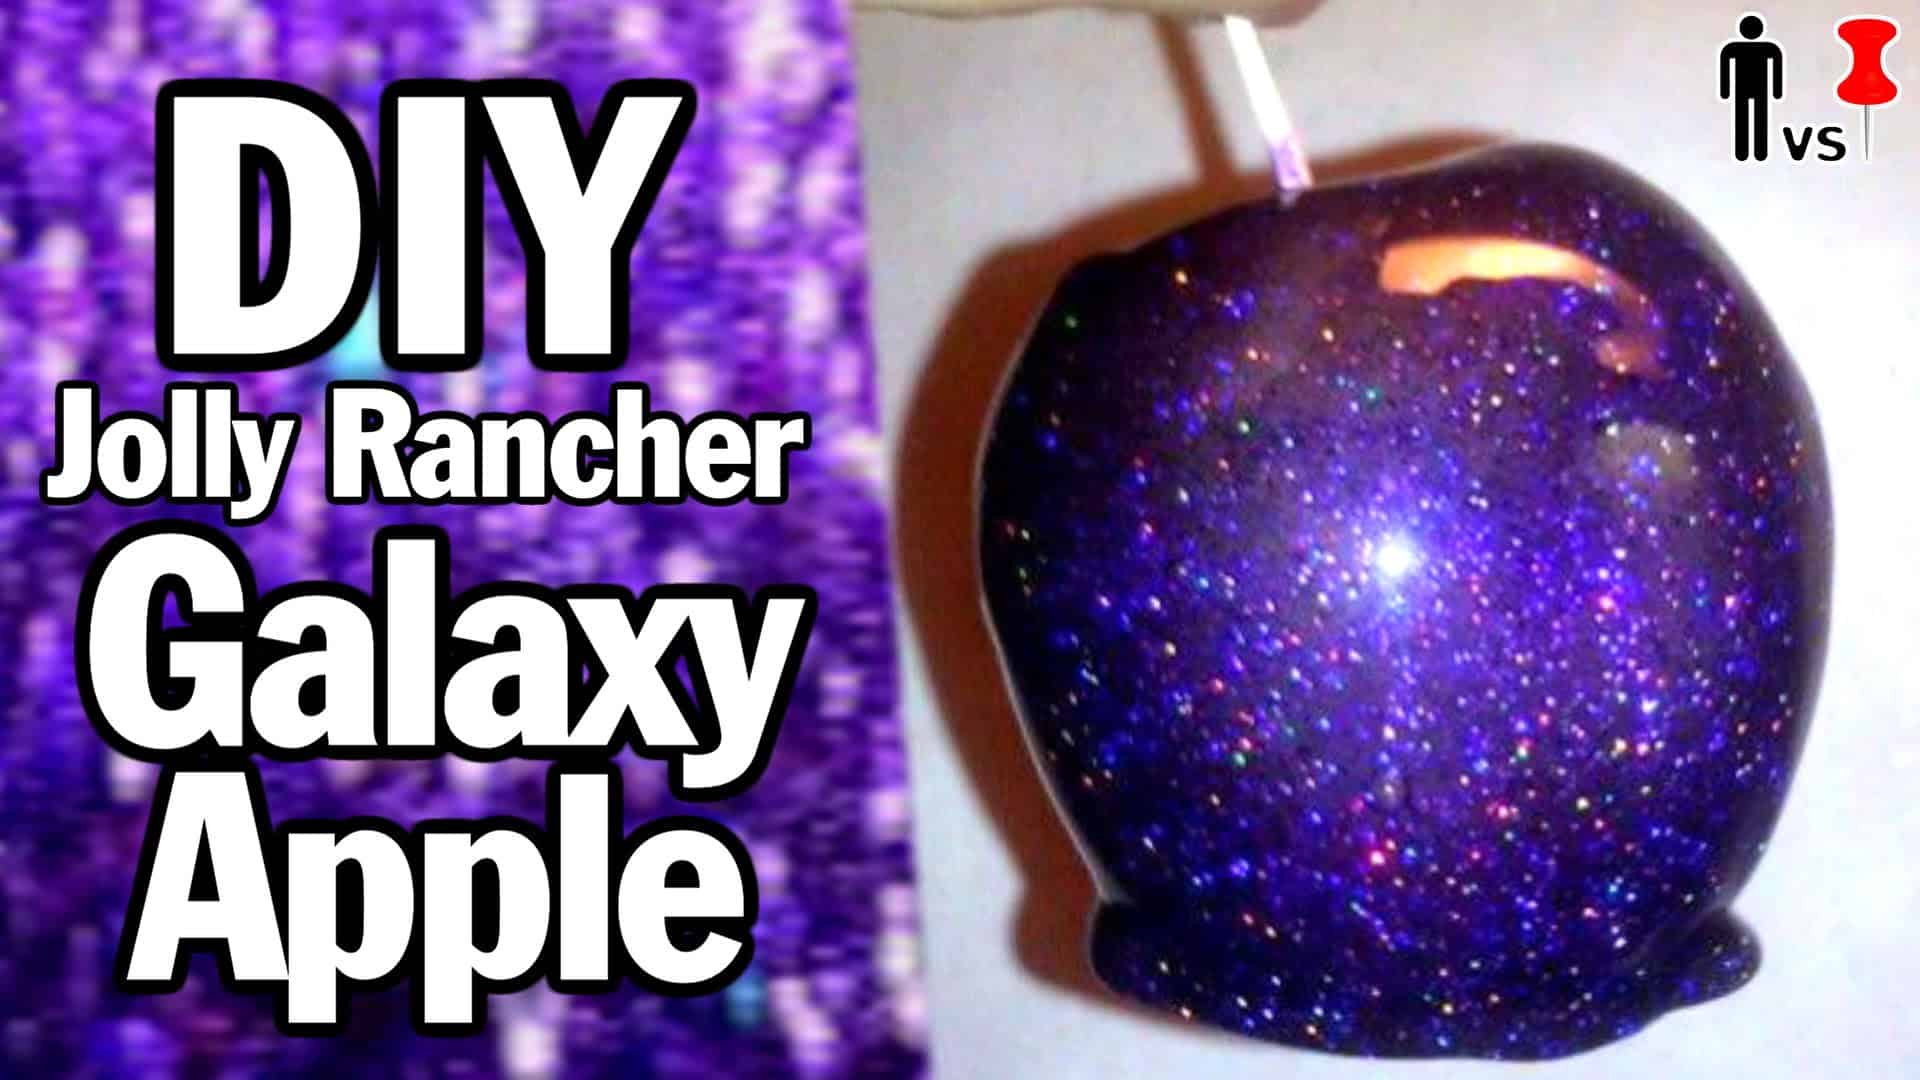 Diy galaxy jolly rancher apple